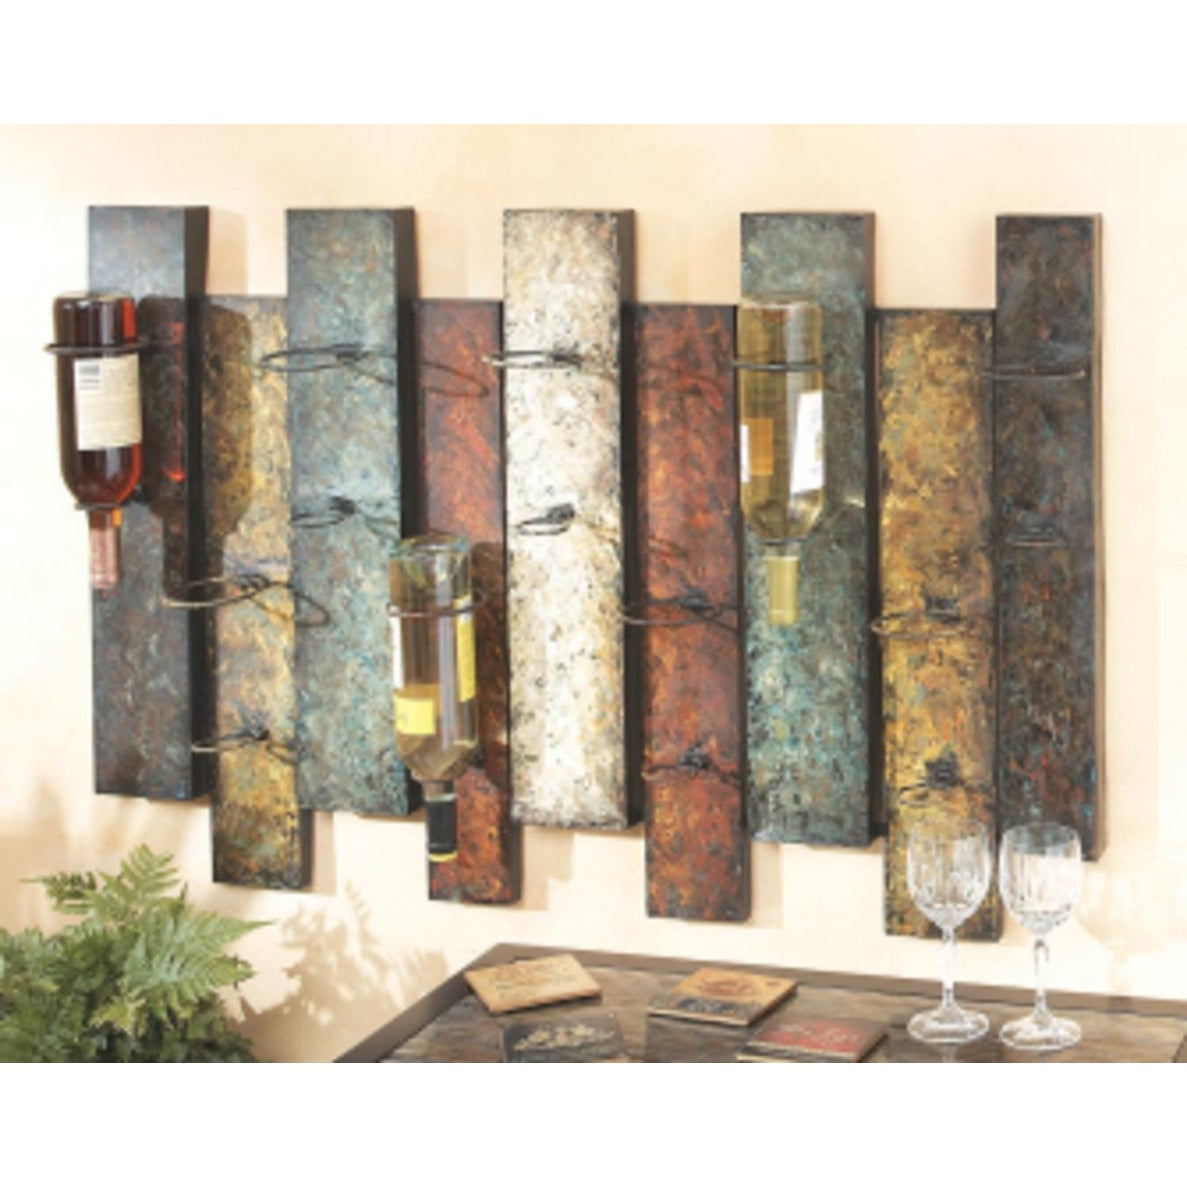 Shop 41 Contemporary Offset Panel Wall Wine Bottle Holder Multi